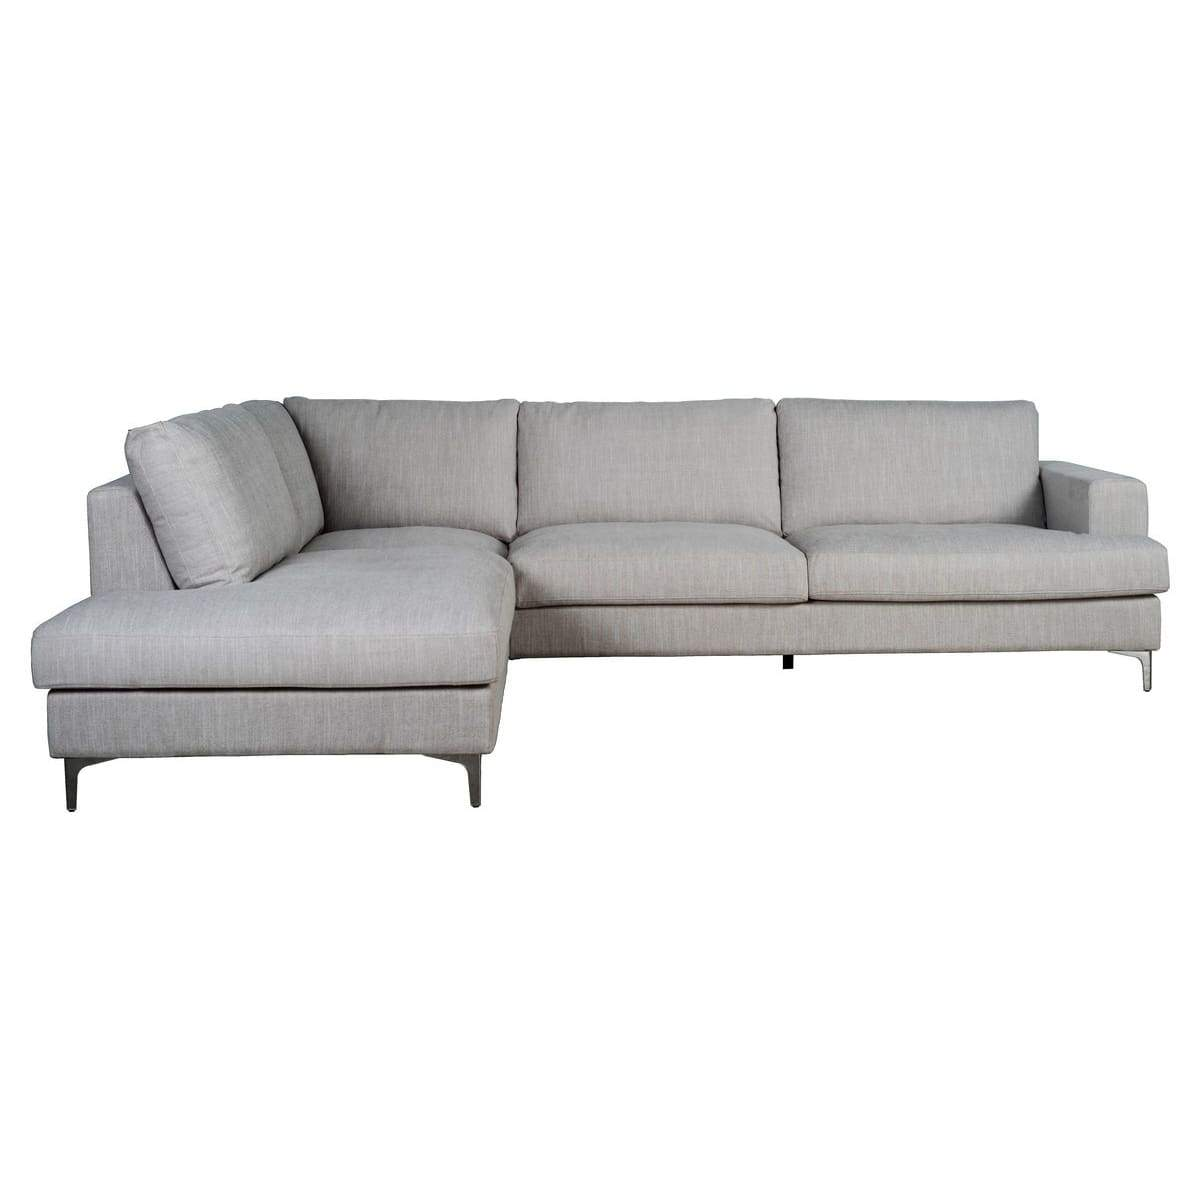 Phoenix Sectional Sofa Chaise LHF - Sofa